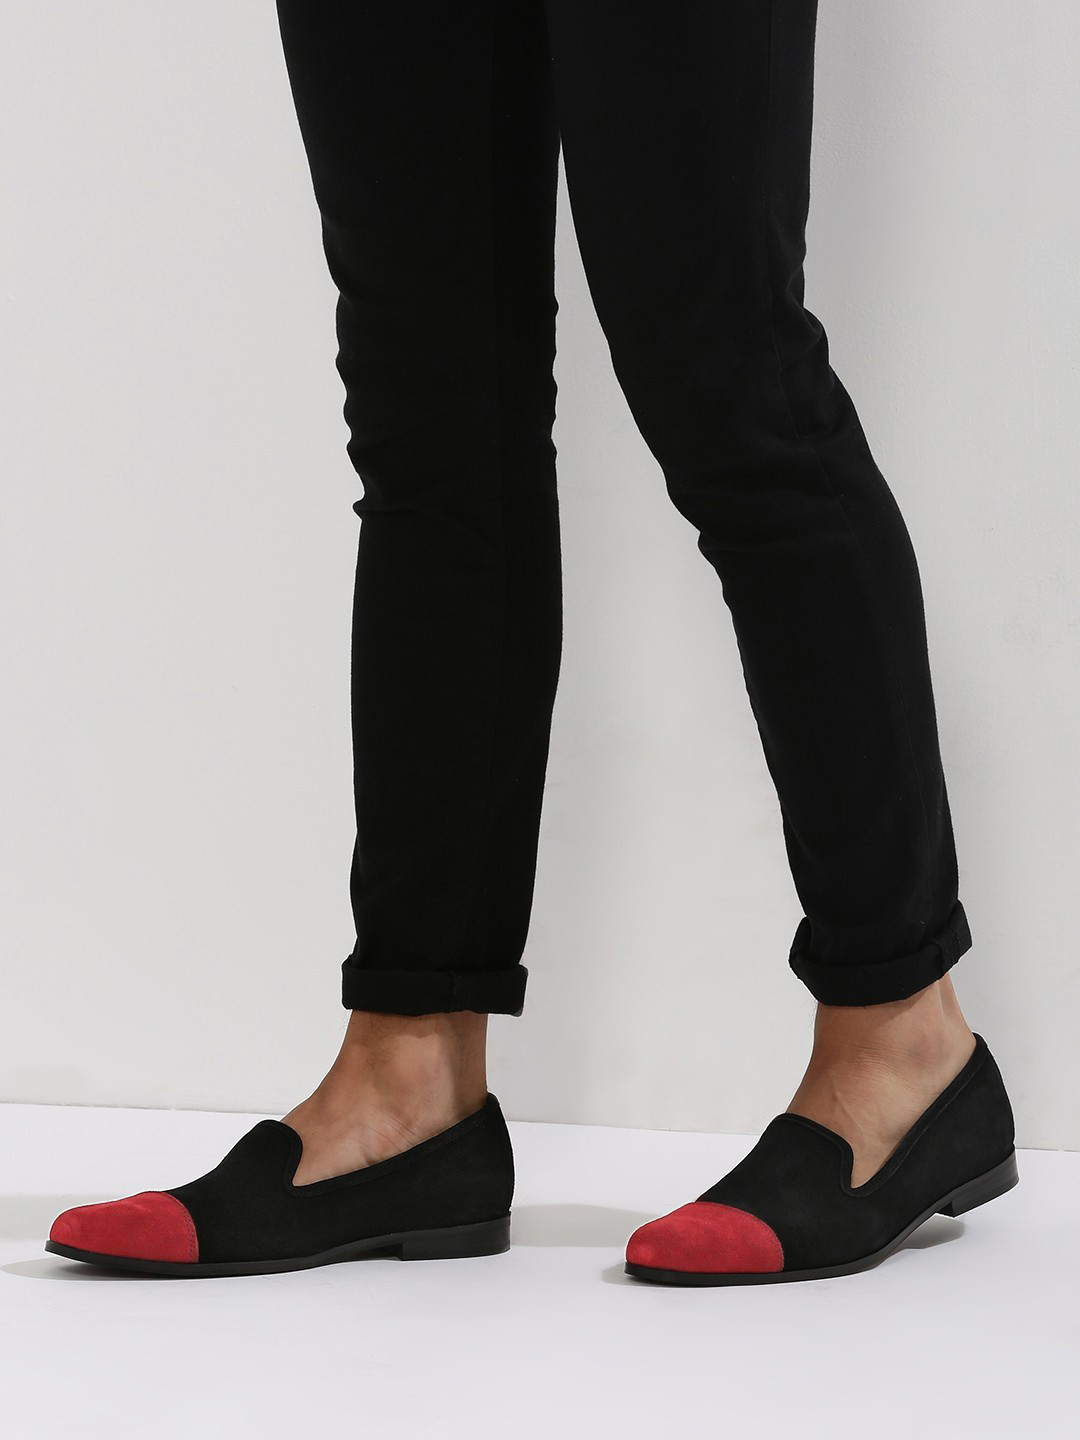 Griffin Black Loafers With Contrast Toe Cap Detailing 1